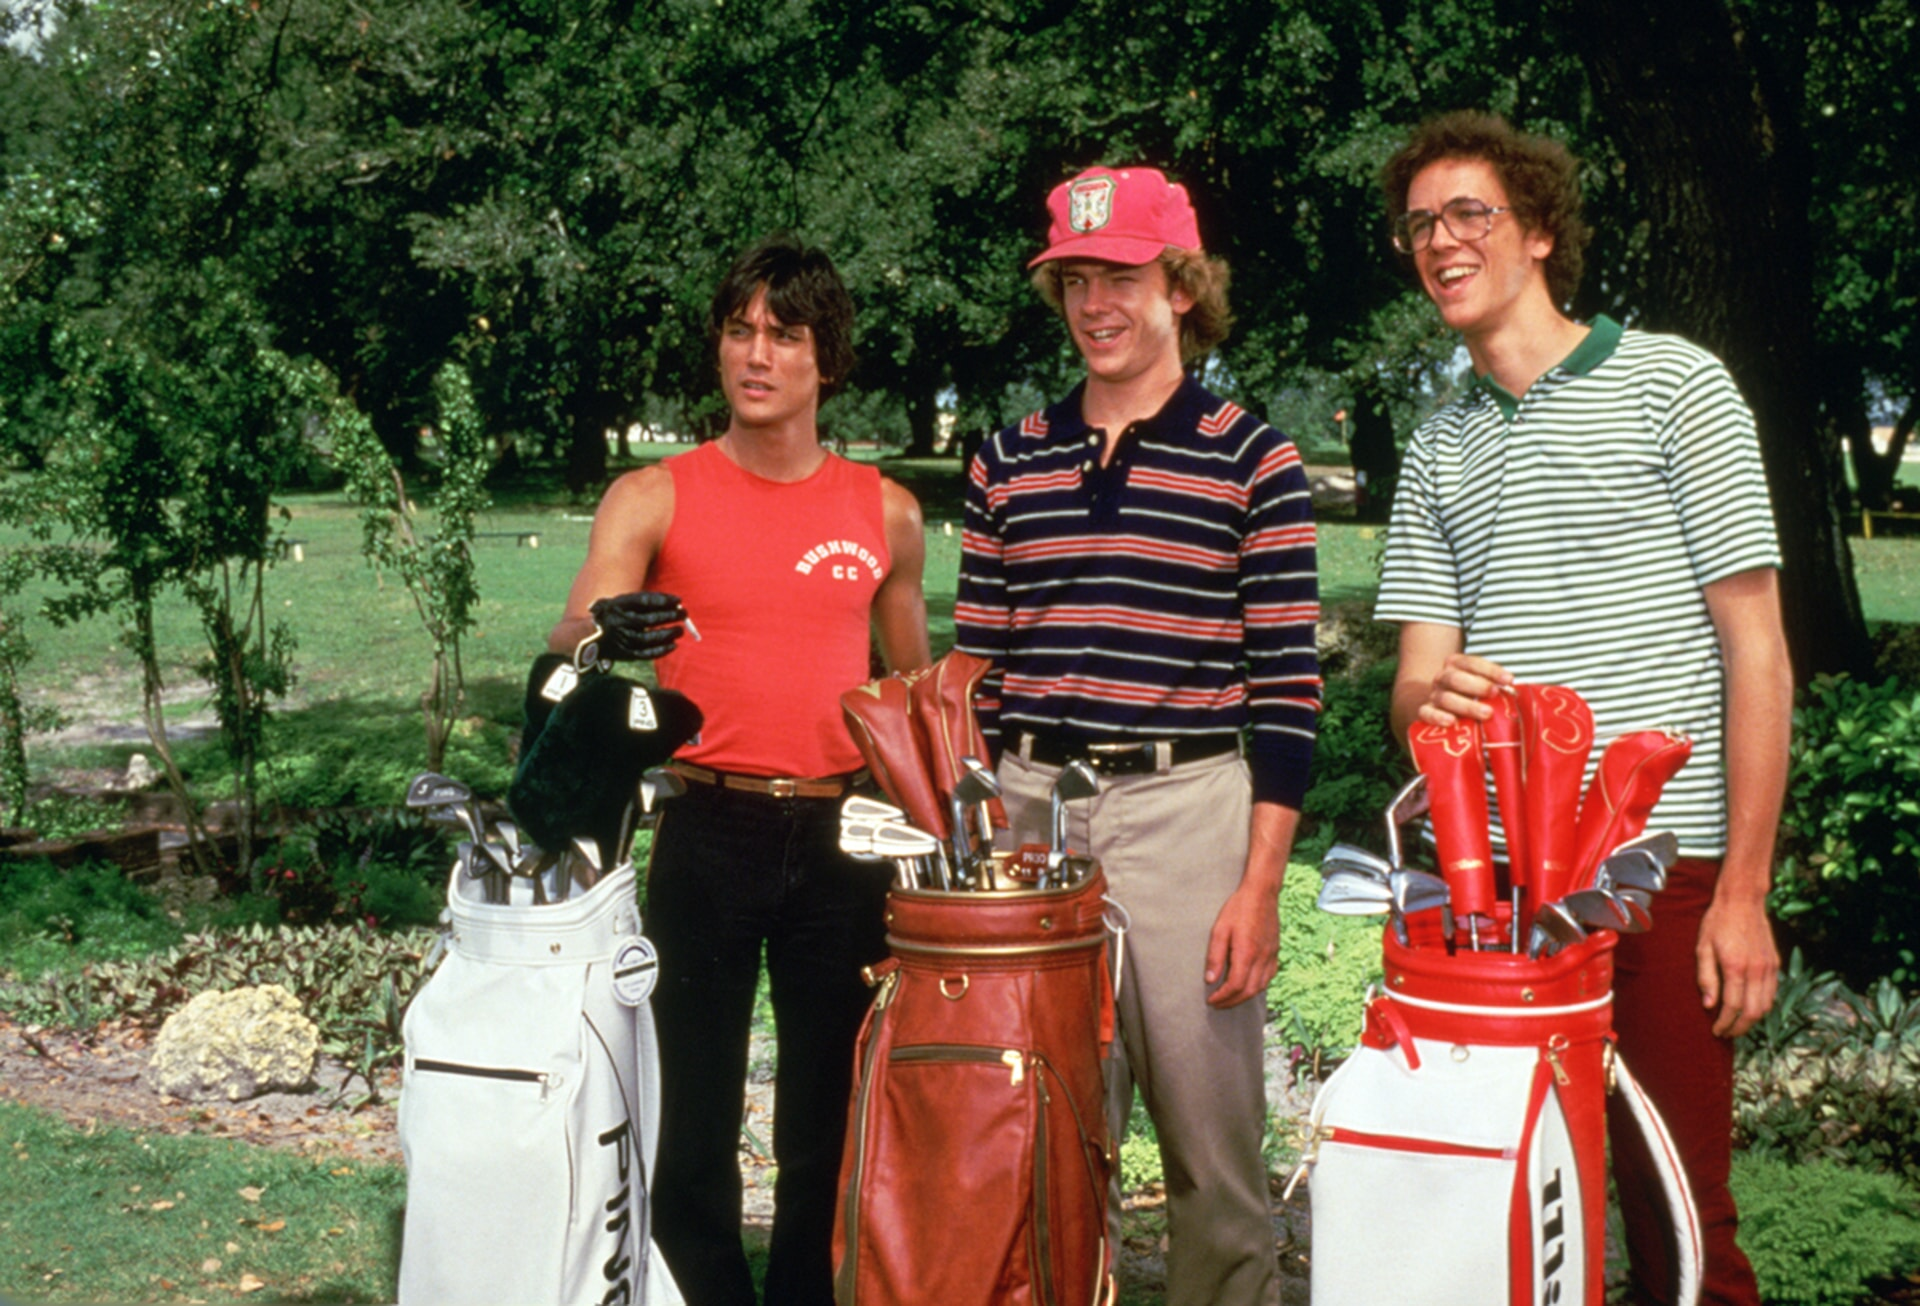 Scott Colomby as tony d'annunizo and michael o'keefe as the top caddies in caddyshack